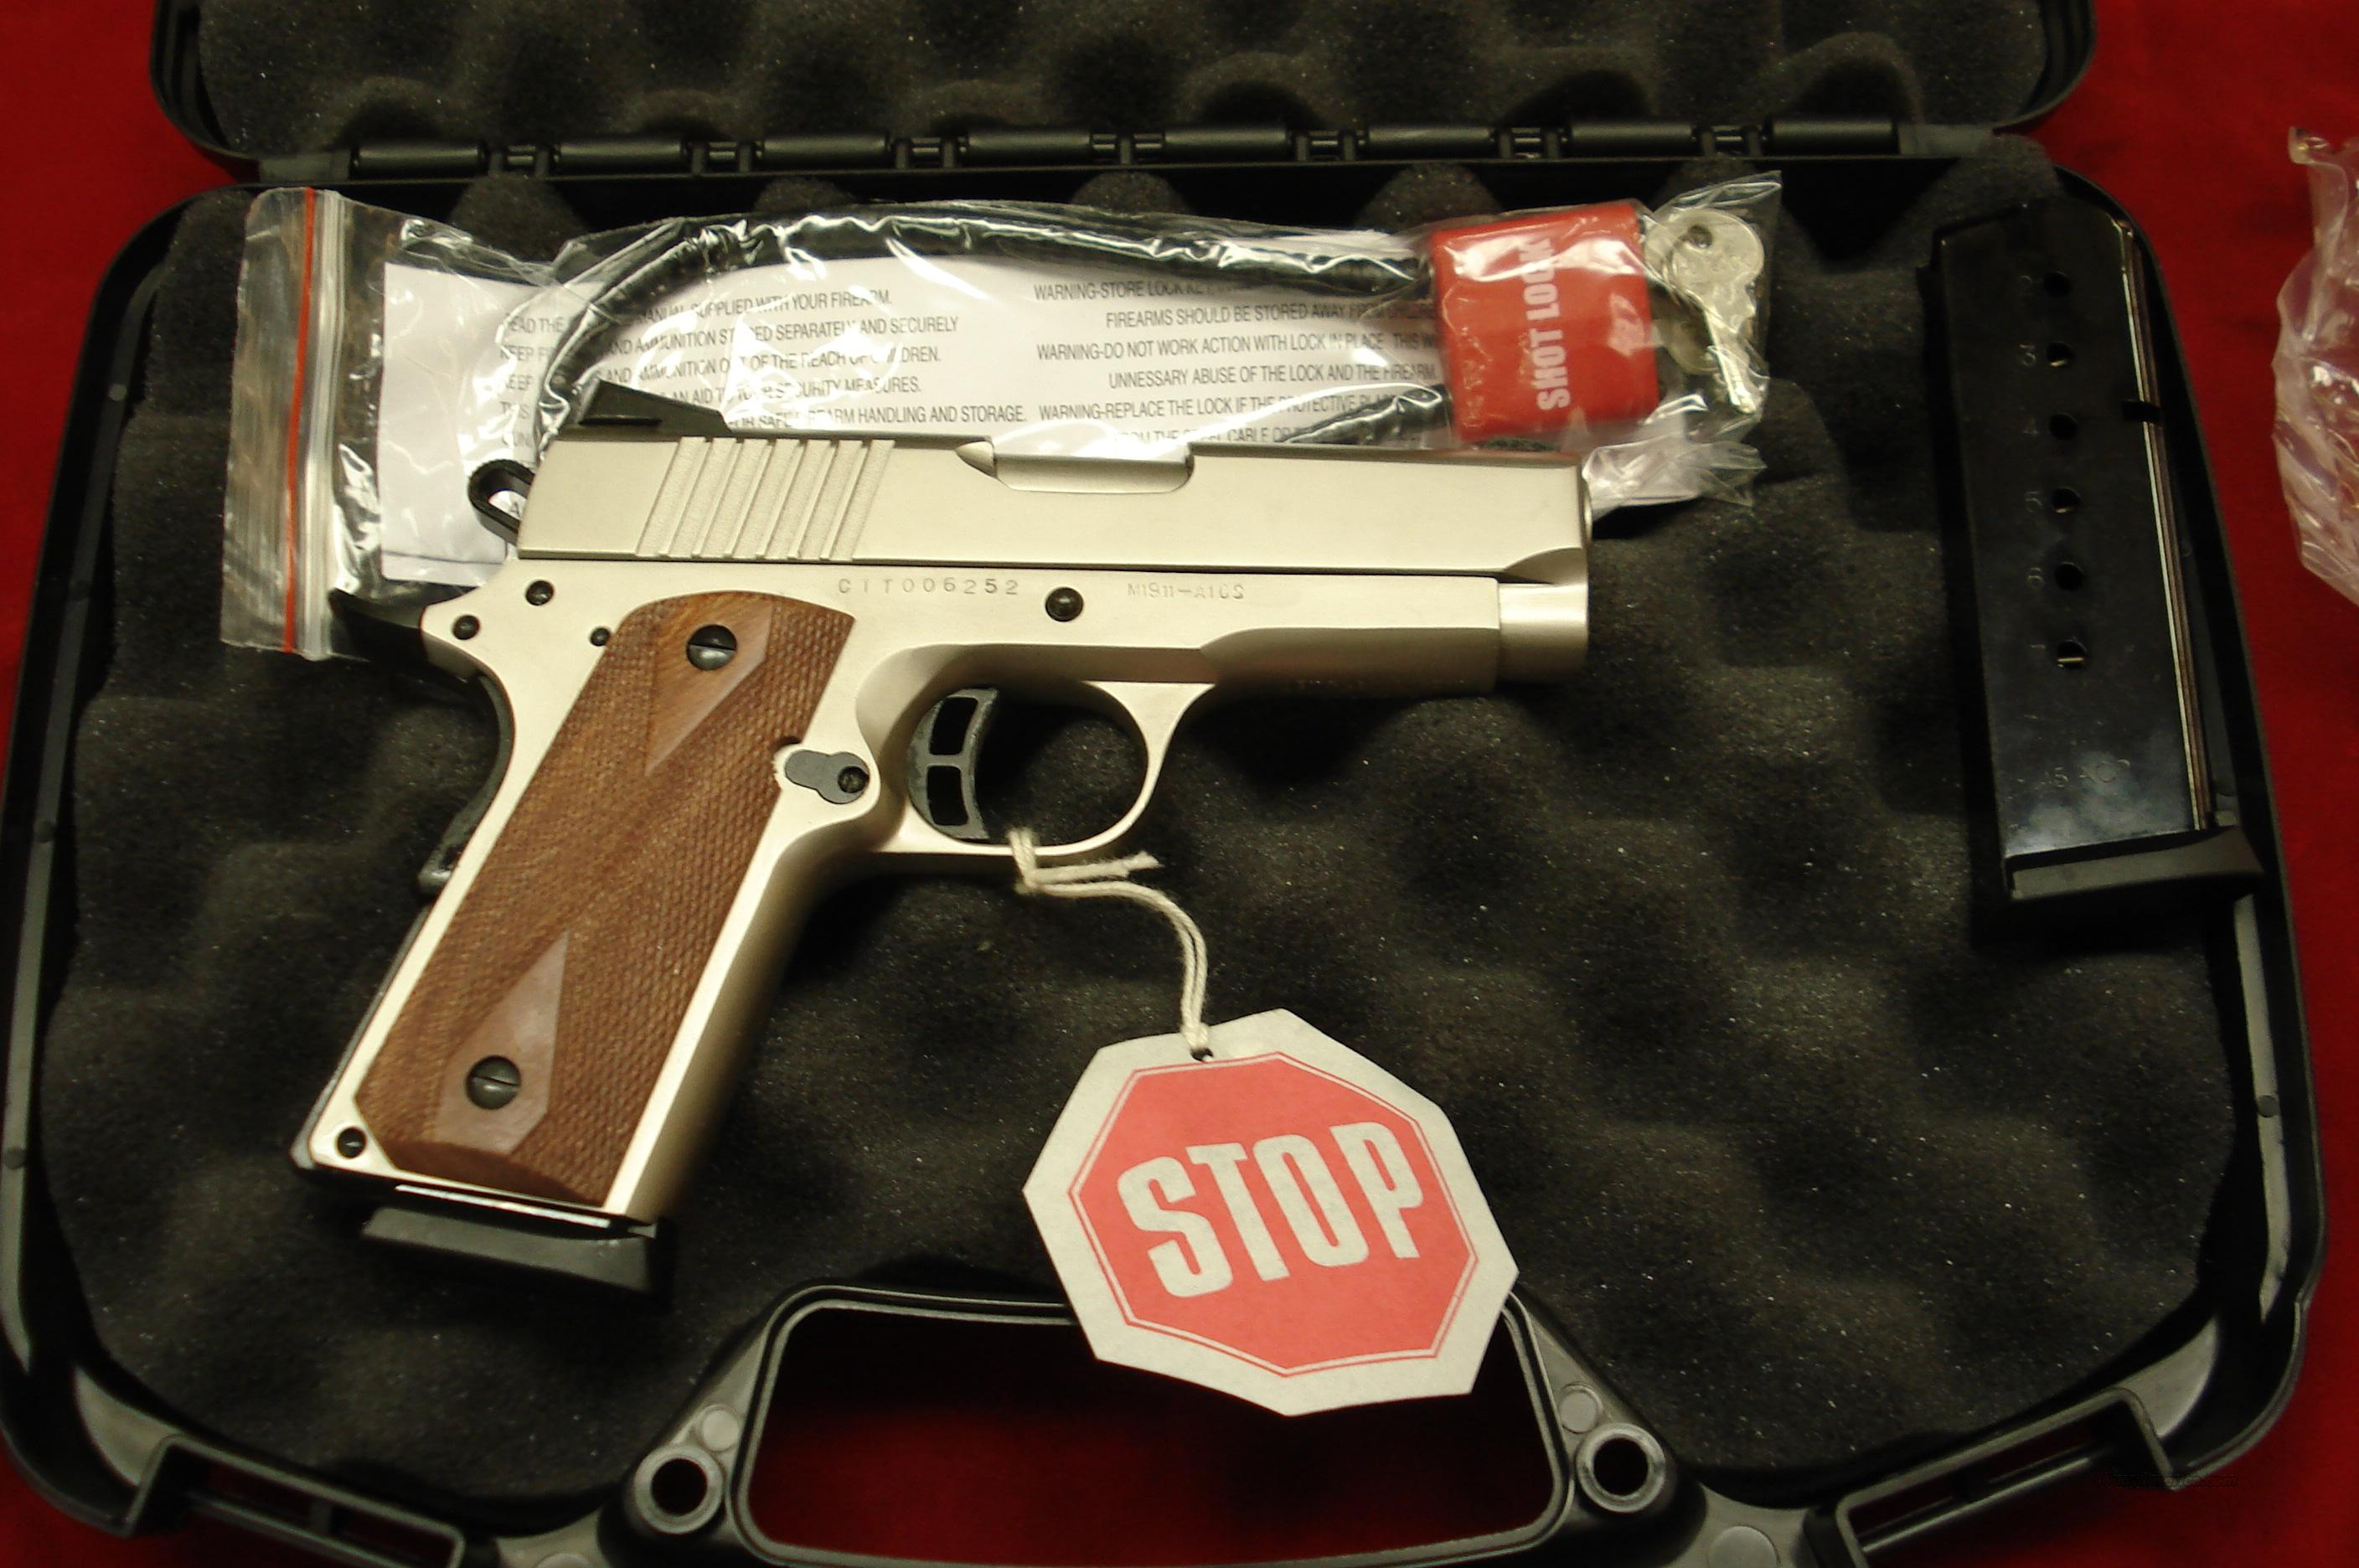 ARMSCOR PRECISION CITADEL COMPACT 45ACP MATTE NICKEL NEW  Guns > Pistols > 1911 Pistol Copies (non-Colt)